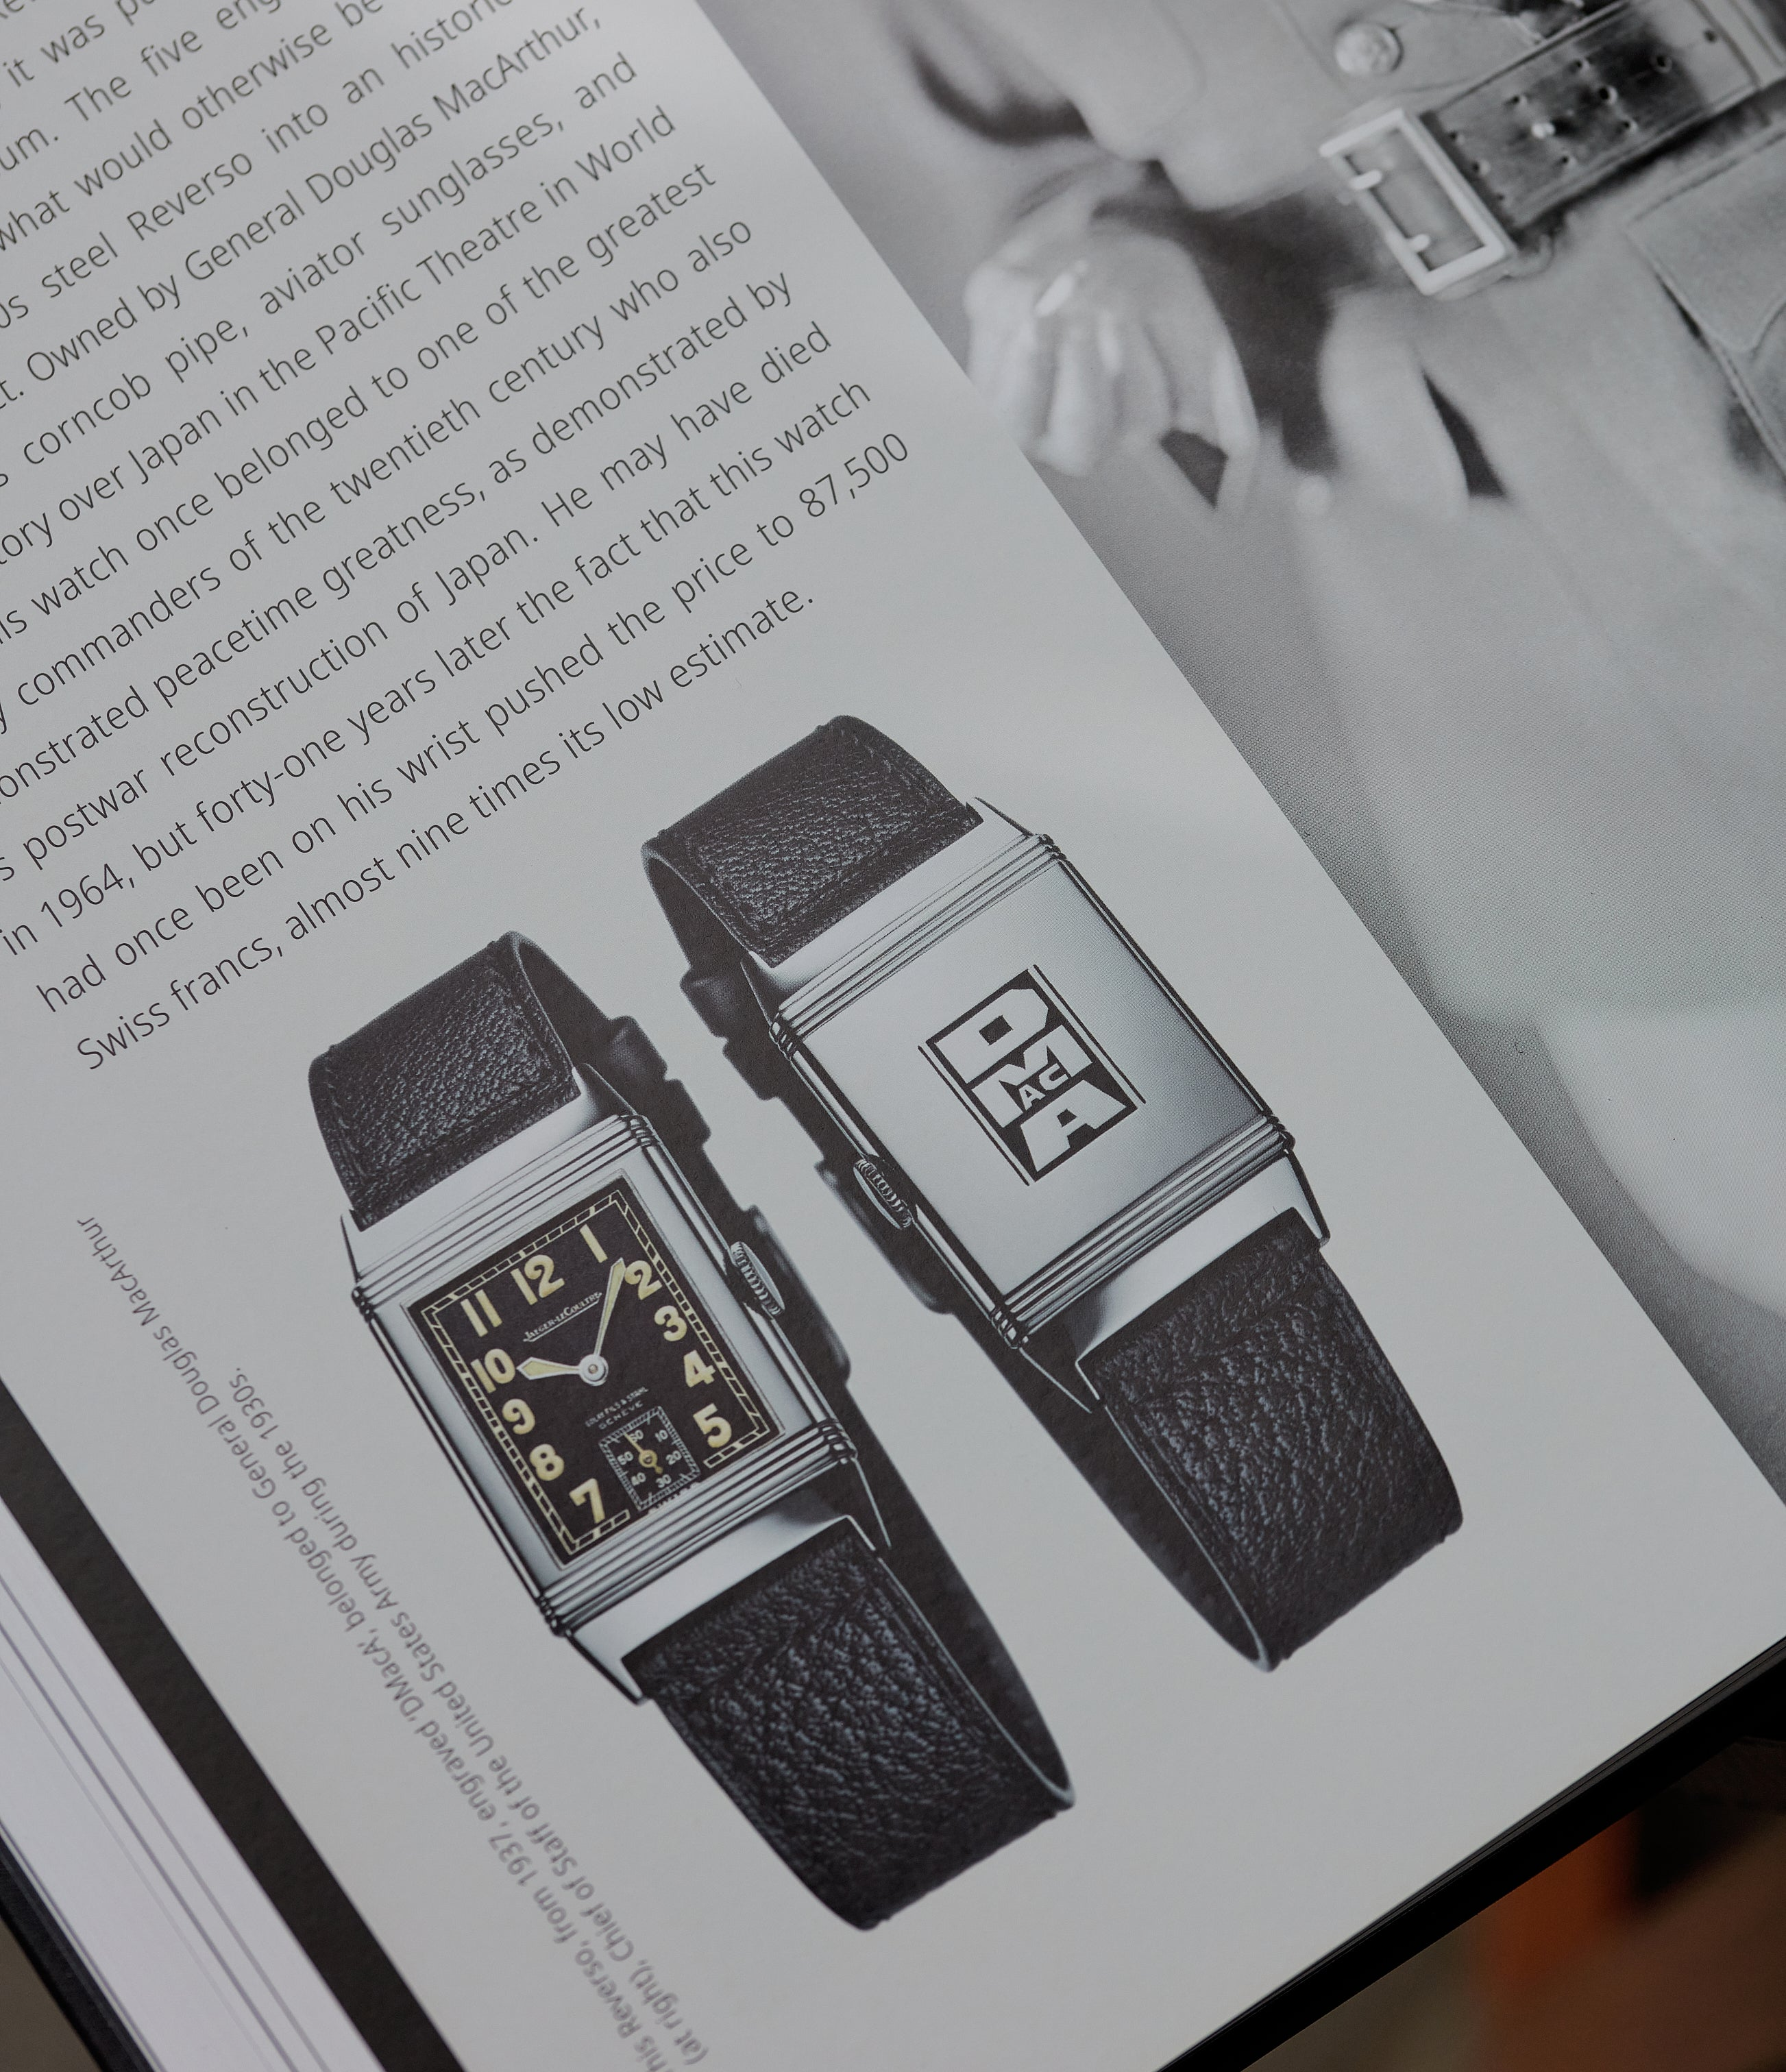 Caseback engravings and lacquer-work for General Douglas McArthur to commemorate historic flight by Amelia Earhart  in The Flippin' History of the Reverso for A Collected Man